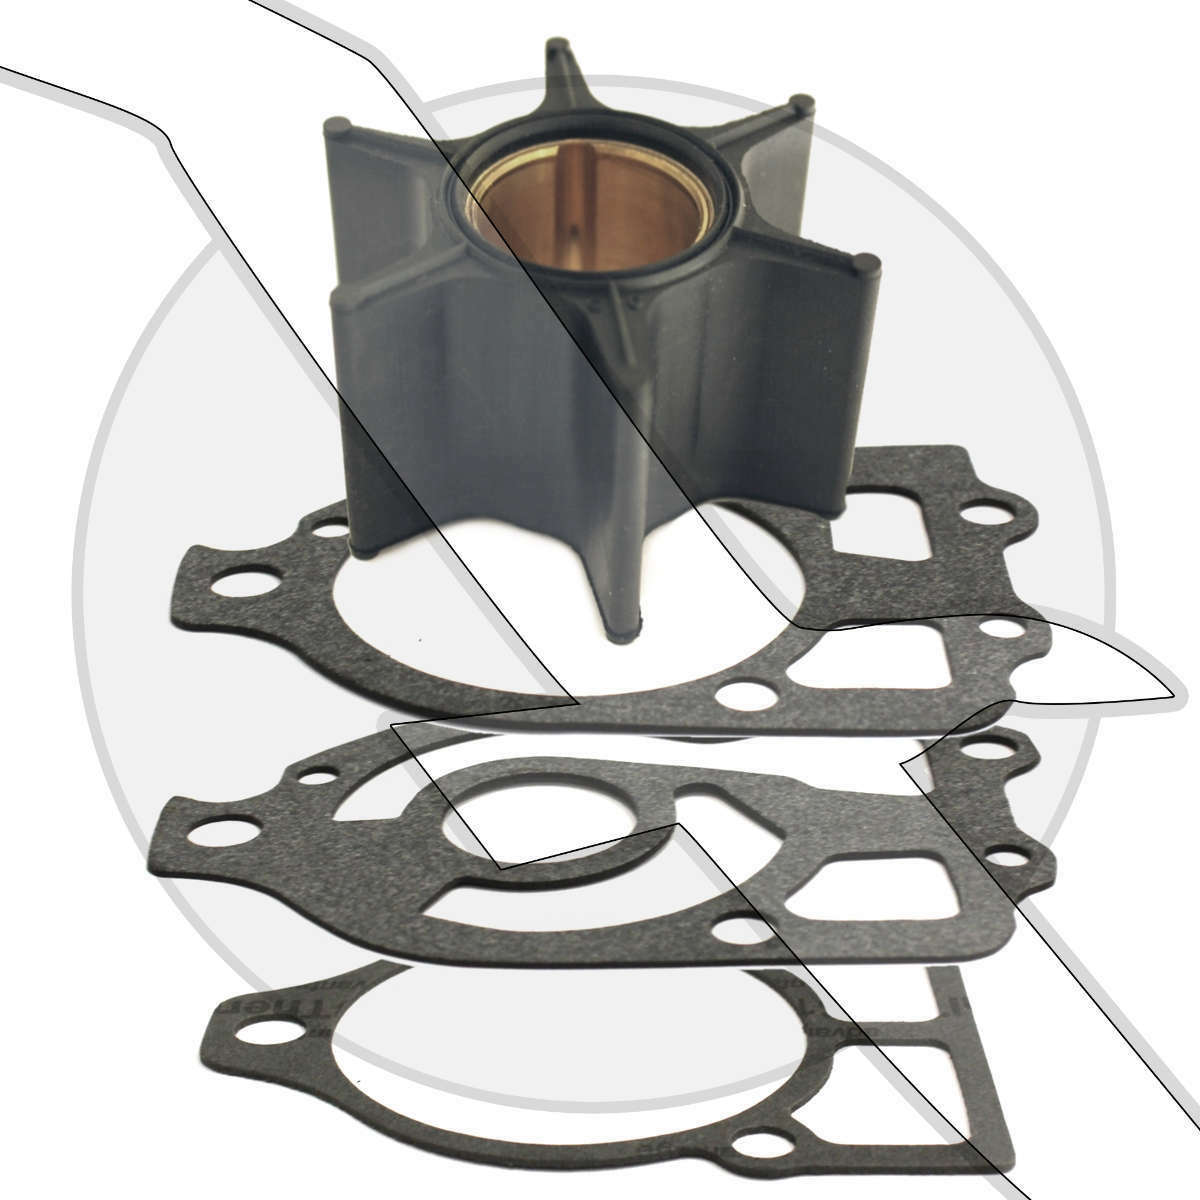 150hp Mercury Outboard Impeller Water Pump Service Repair Kit 47-89984 1 of  3FREE Shipping ...